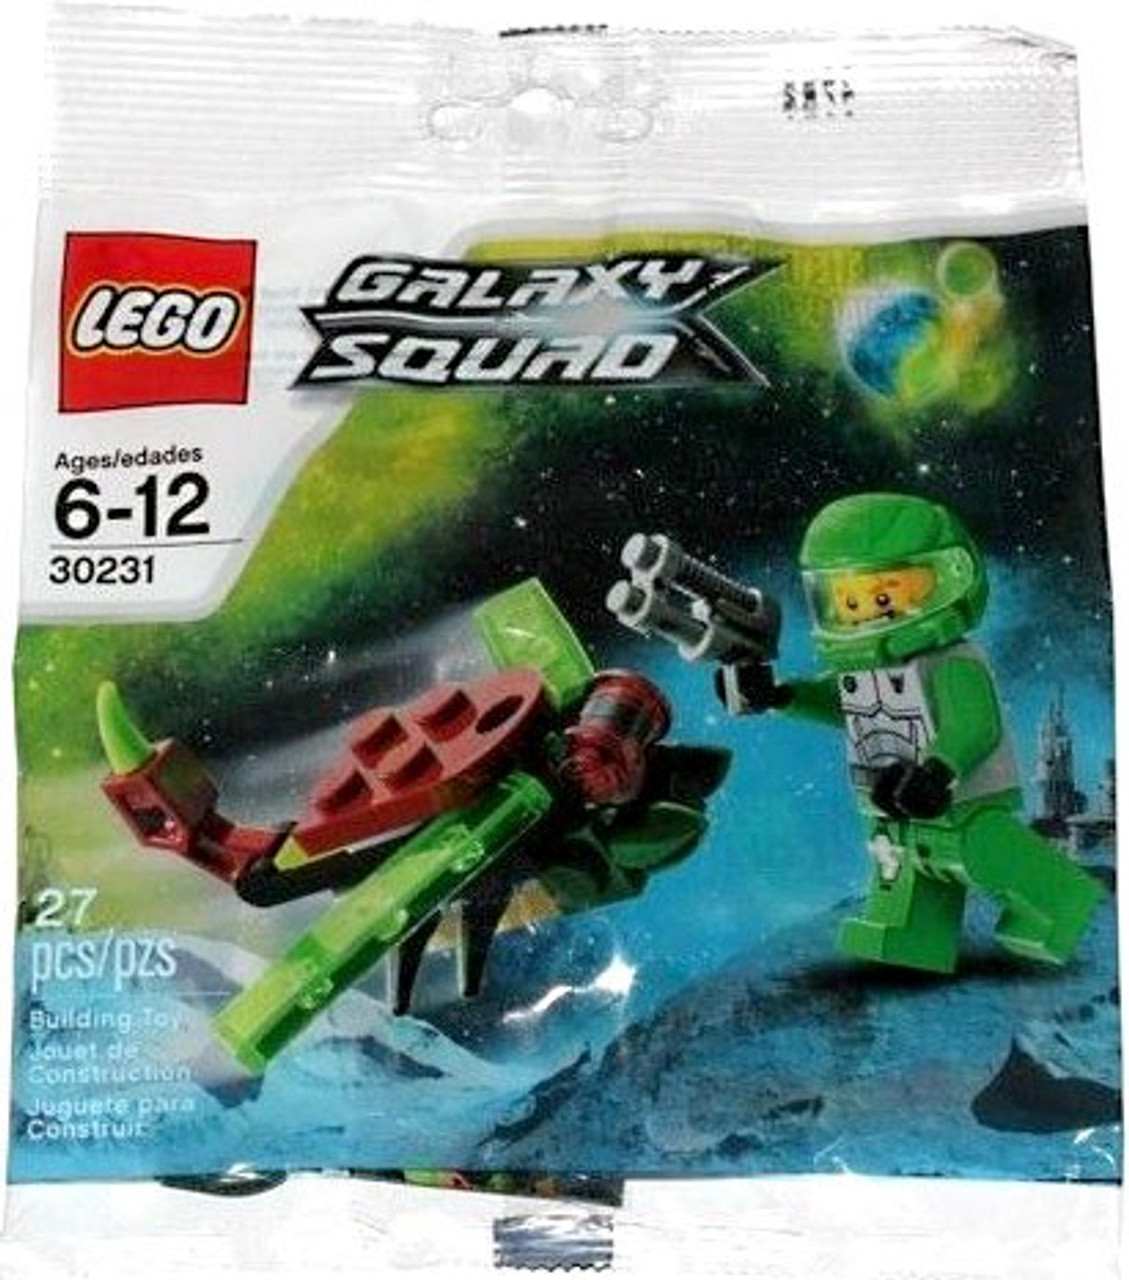 LEGO Galaxy Squad Insectoid Mini Set #30231 [Bagged]